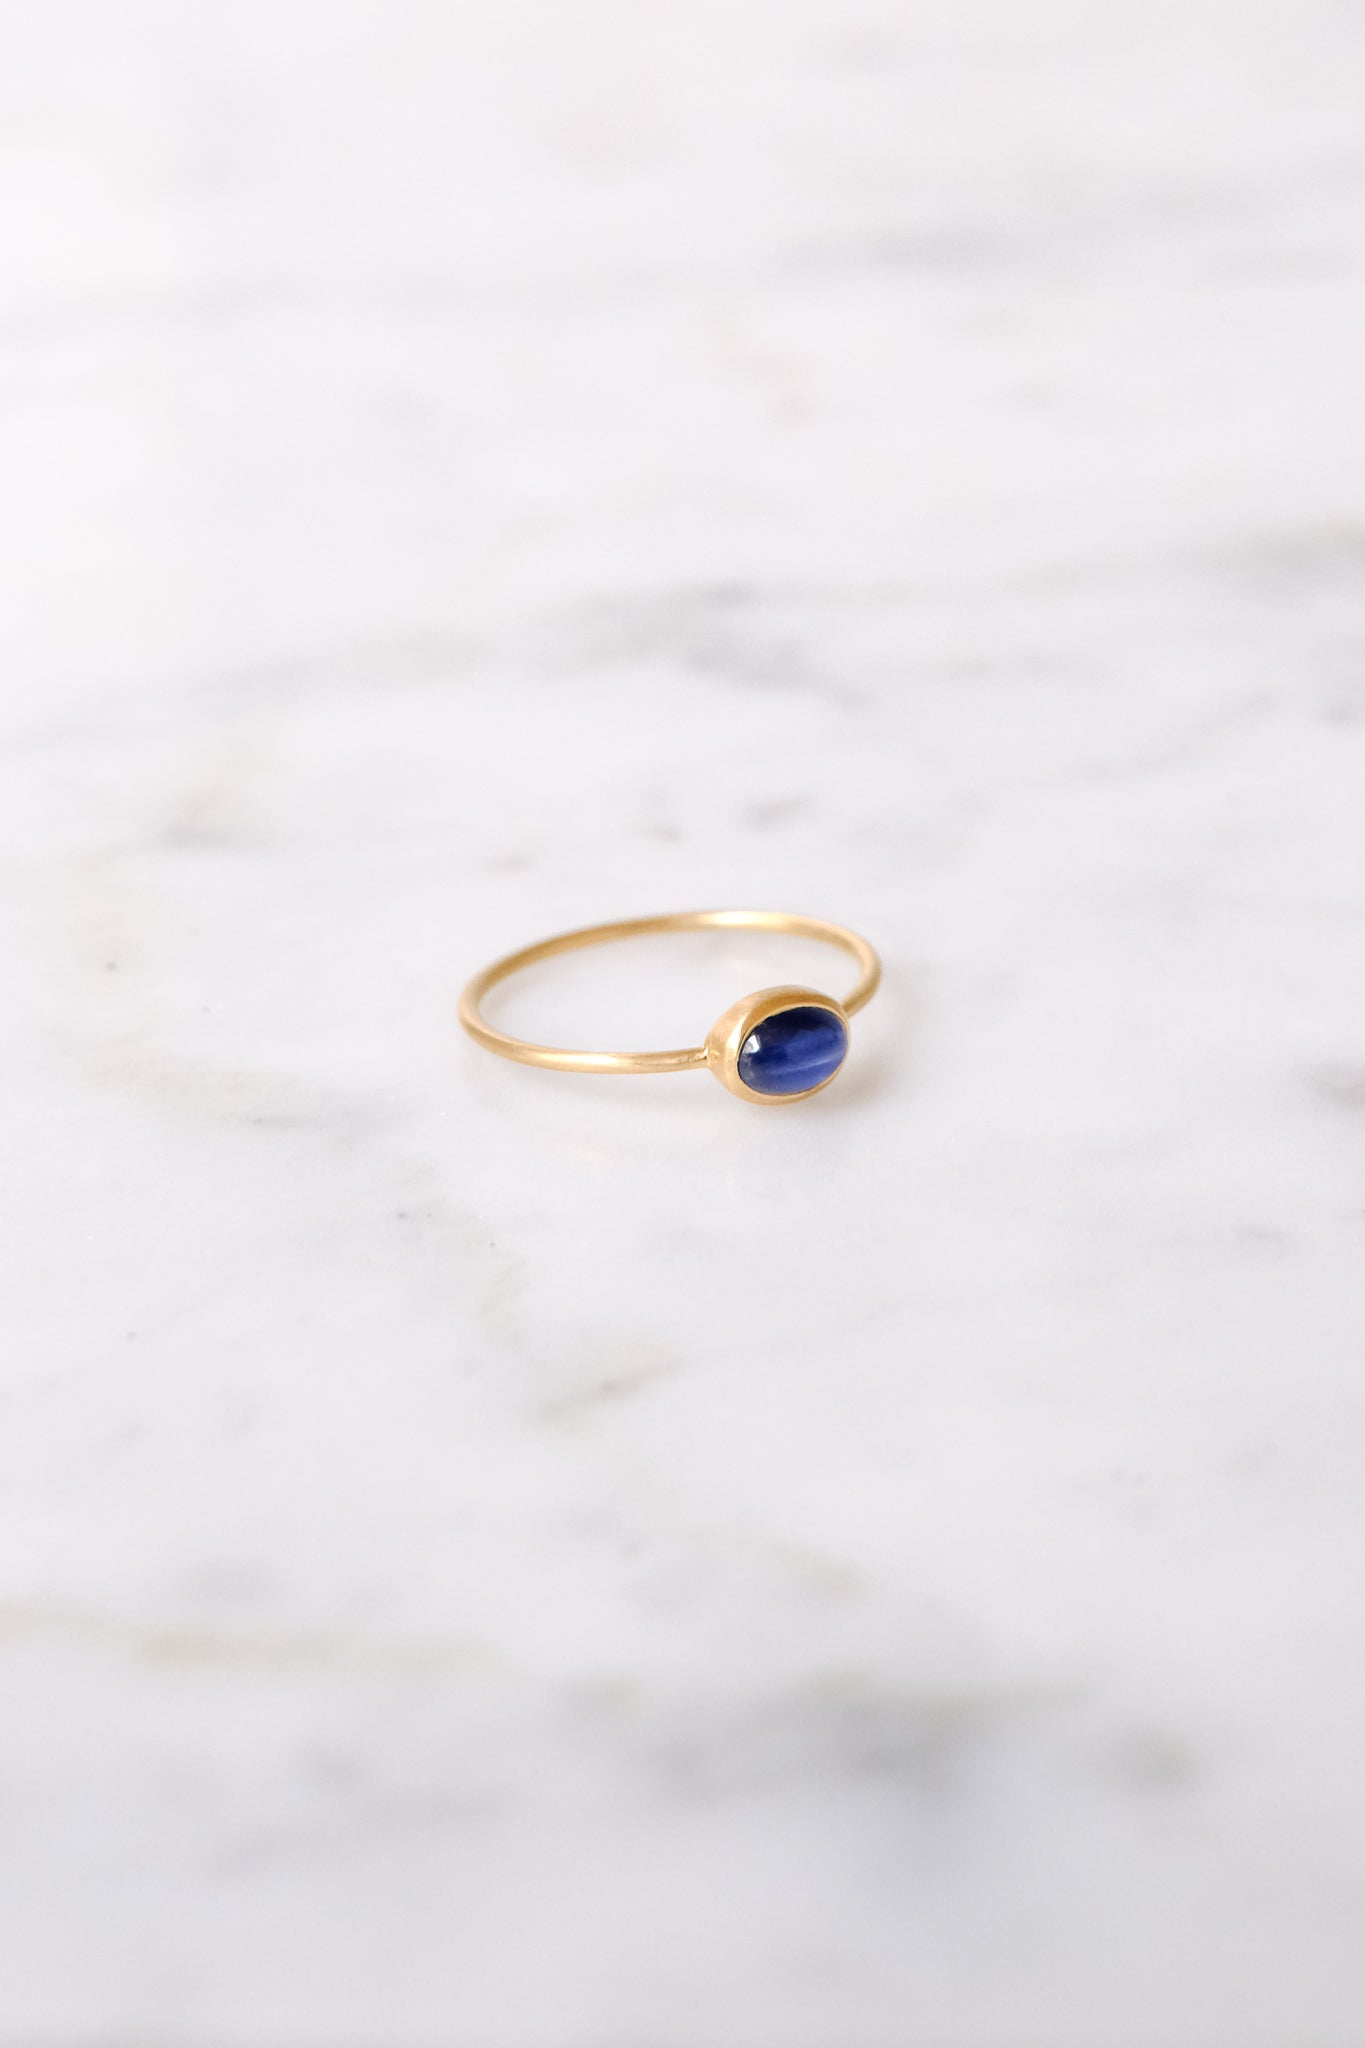 Margaret Solow :: Ring, Blue Sapphire 18kt